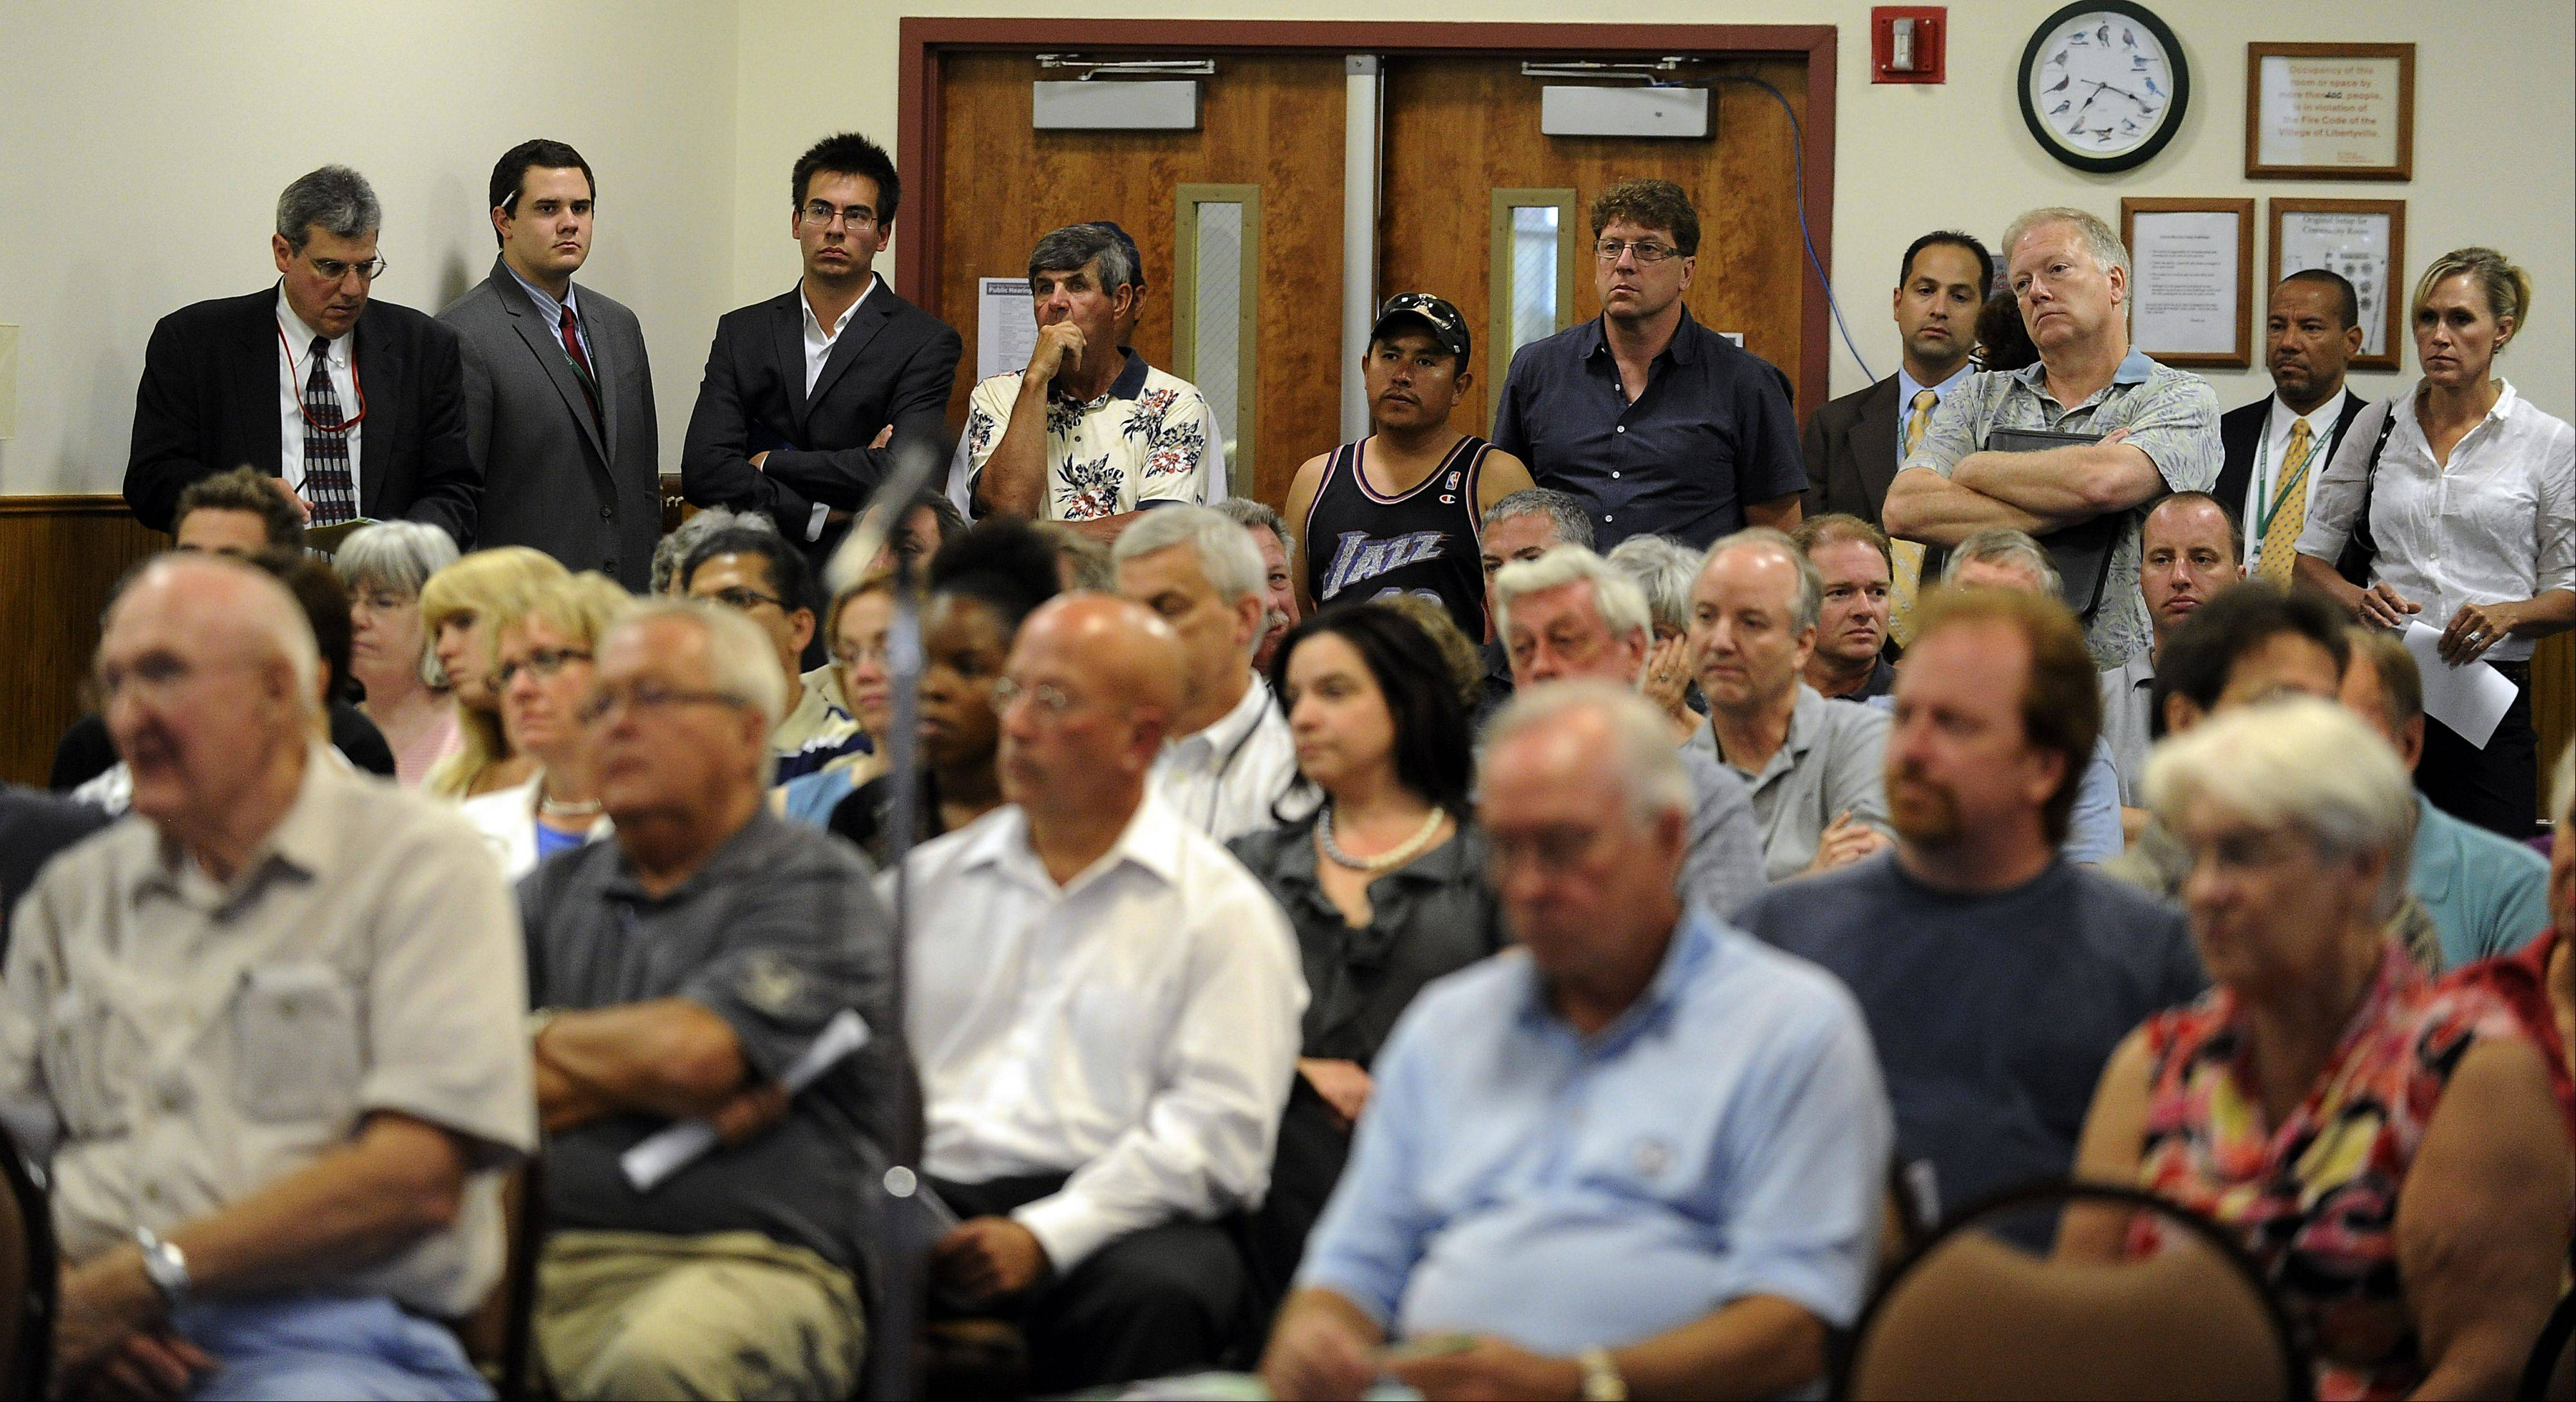 More than 200 filled the Libertyville Civic Center Friday night for a public hearing on a proposed $12 billion capital plan for the Illinois tollway system.